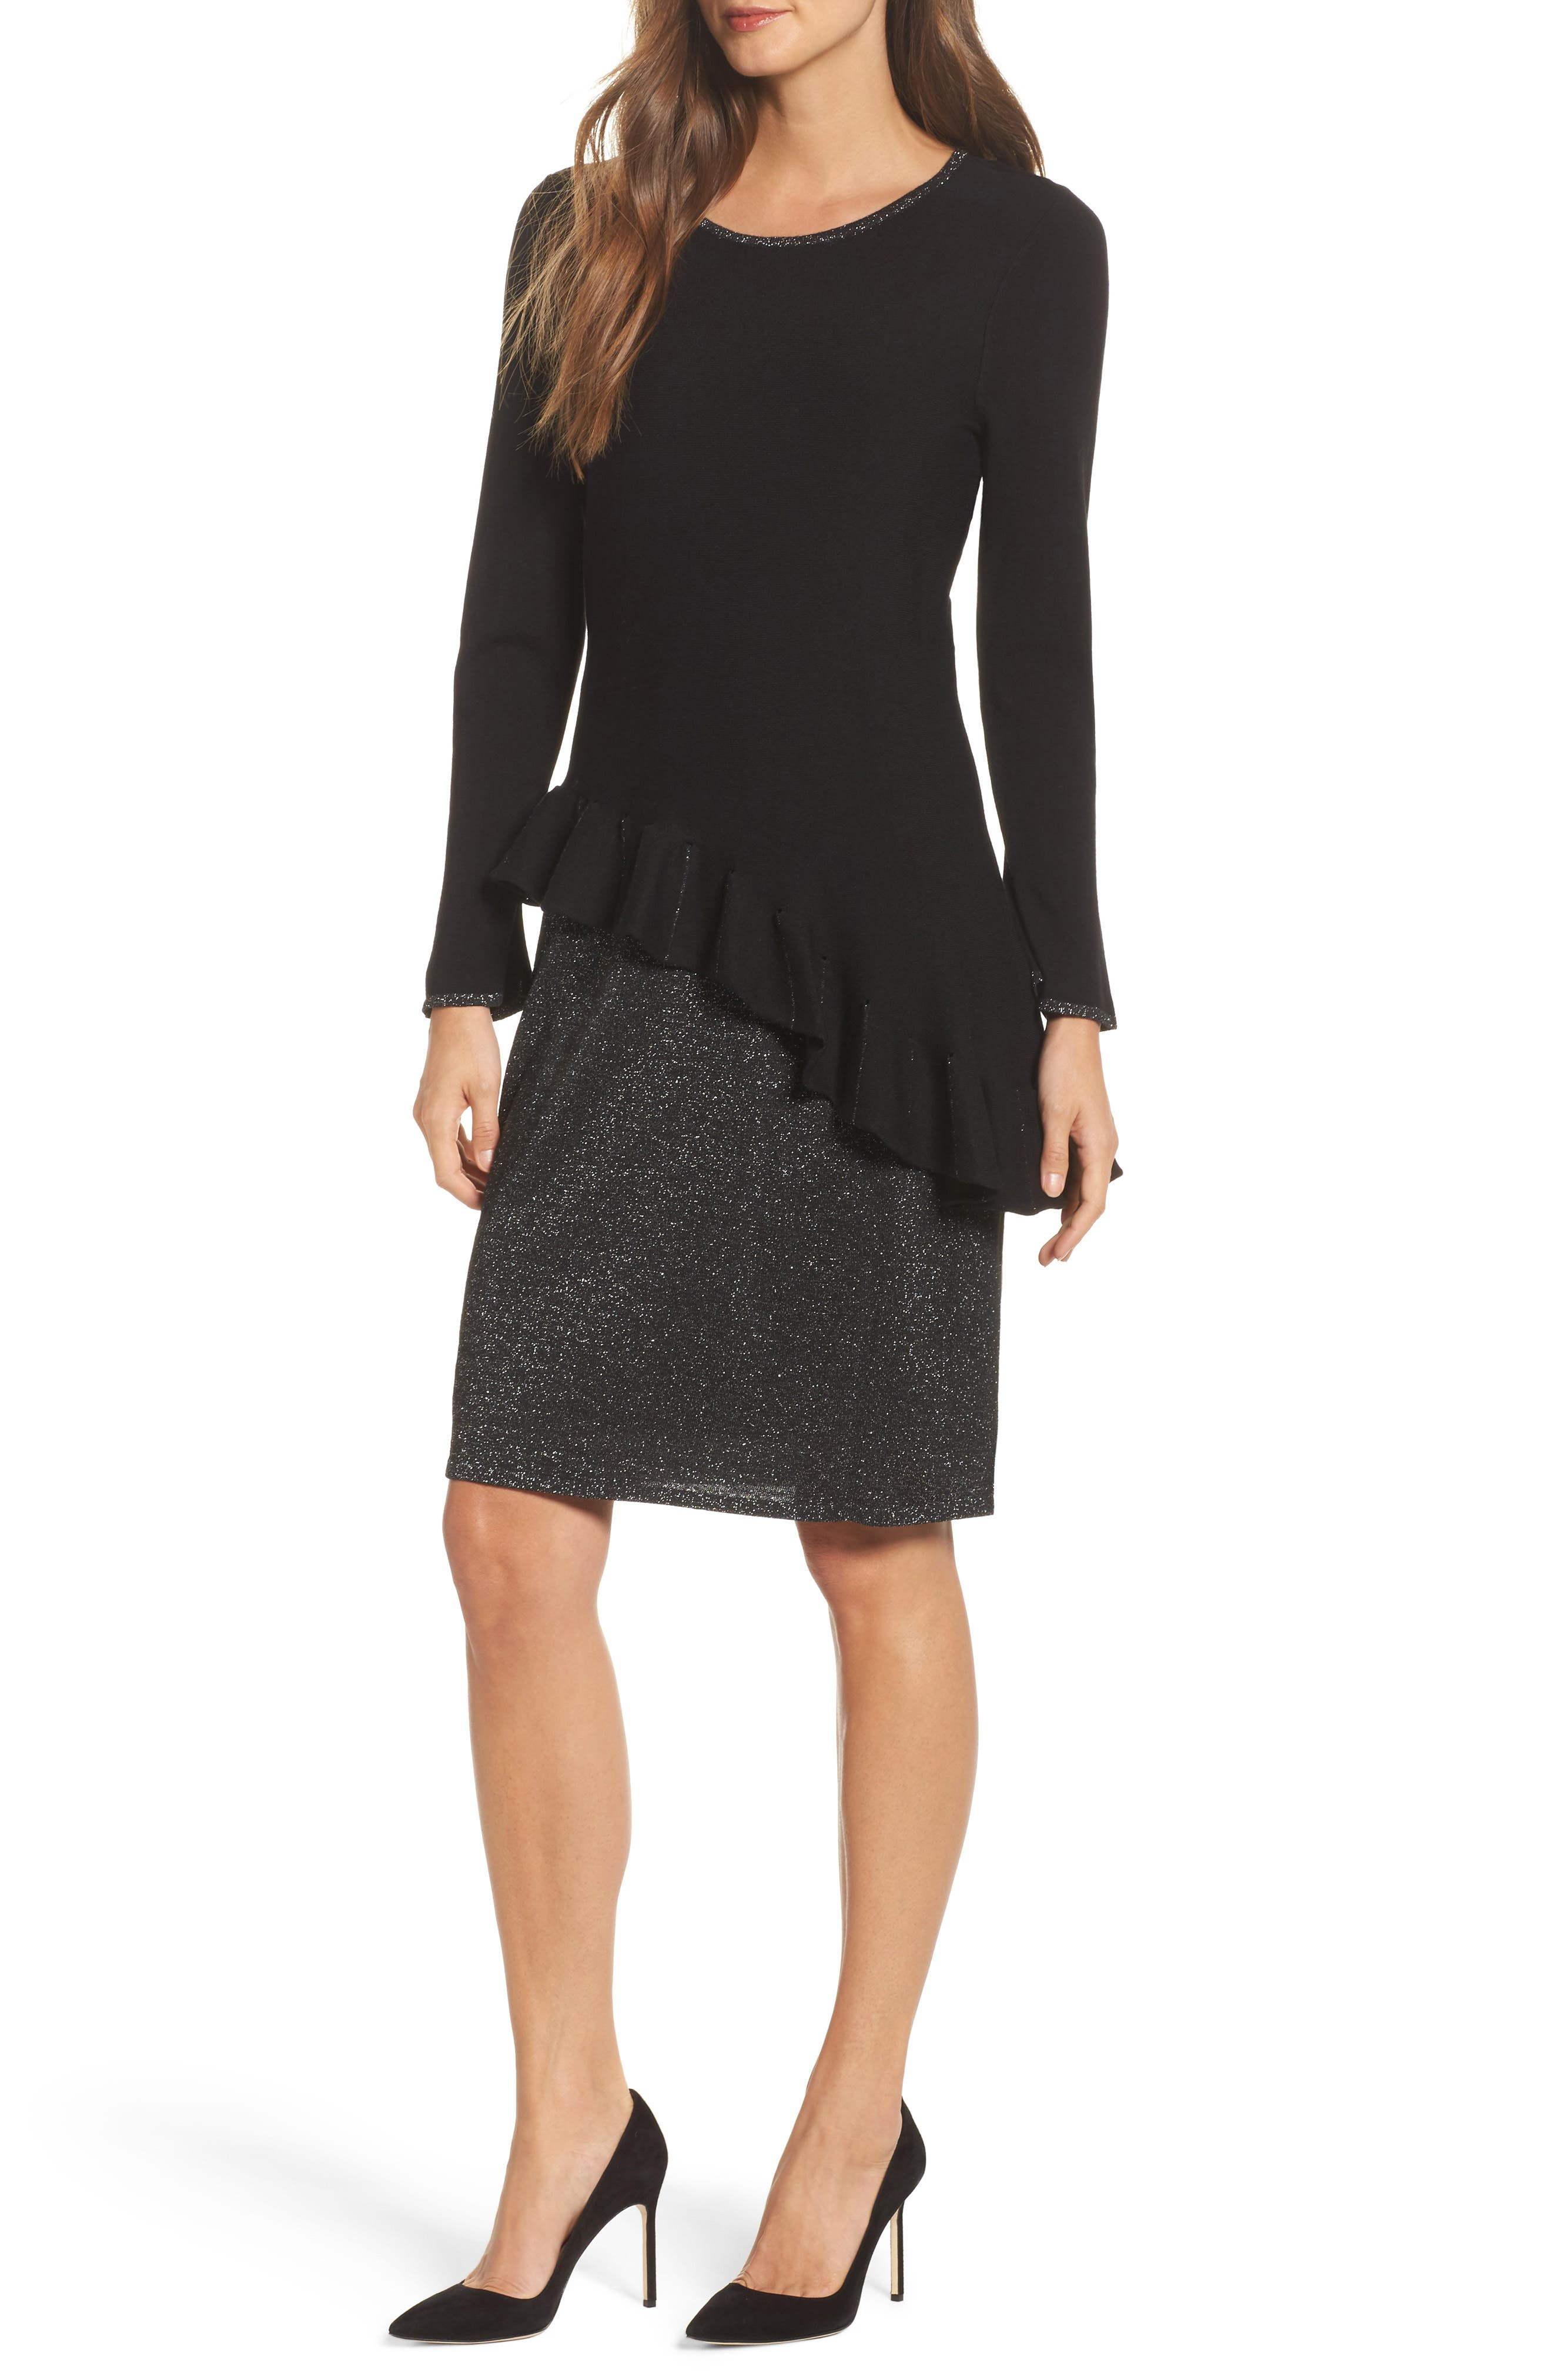 Ruffled Up Two-Piece Dress,                         Main,                         color, Black Onyx